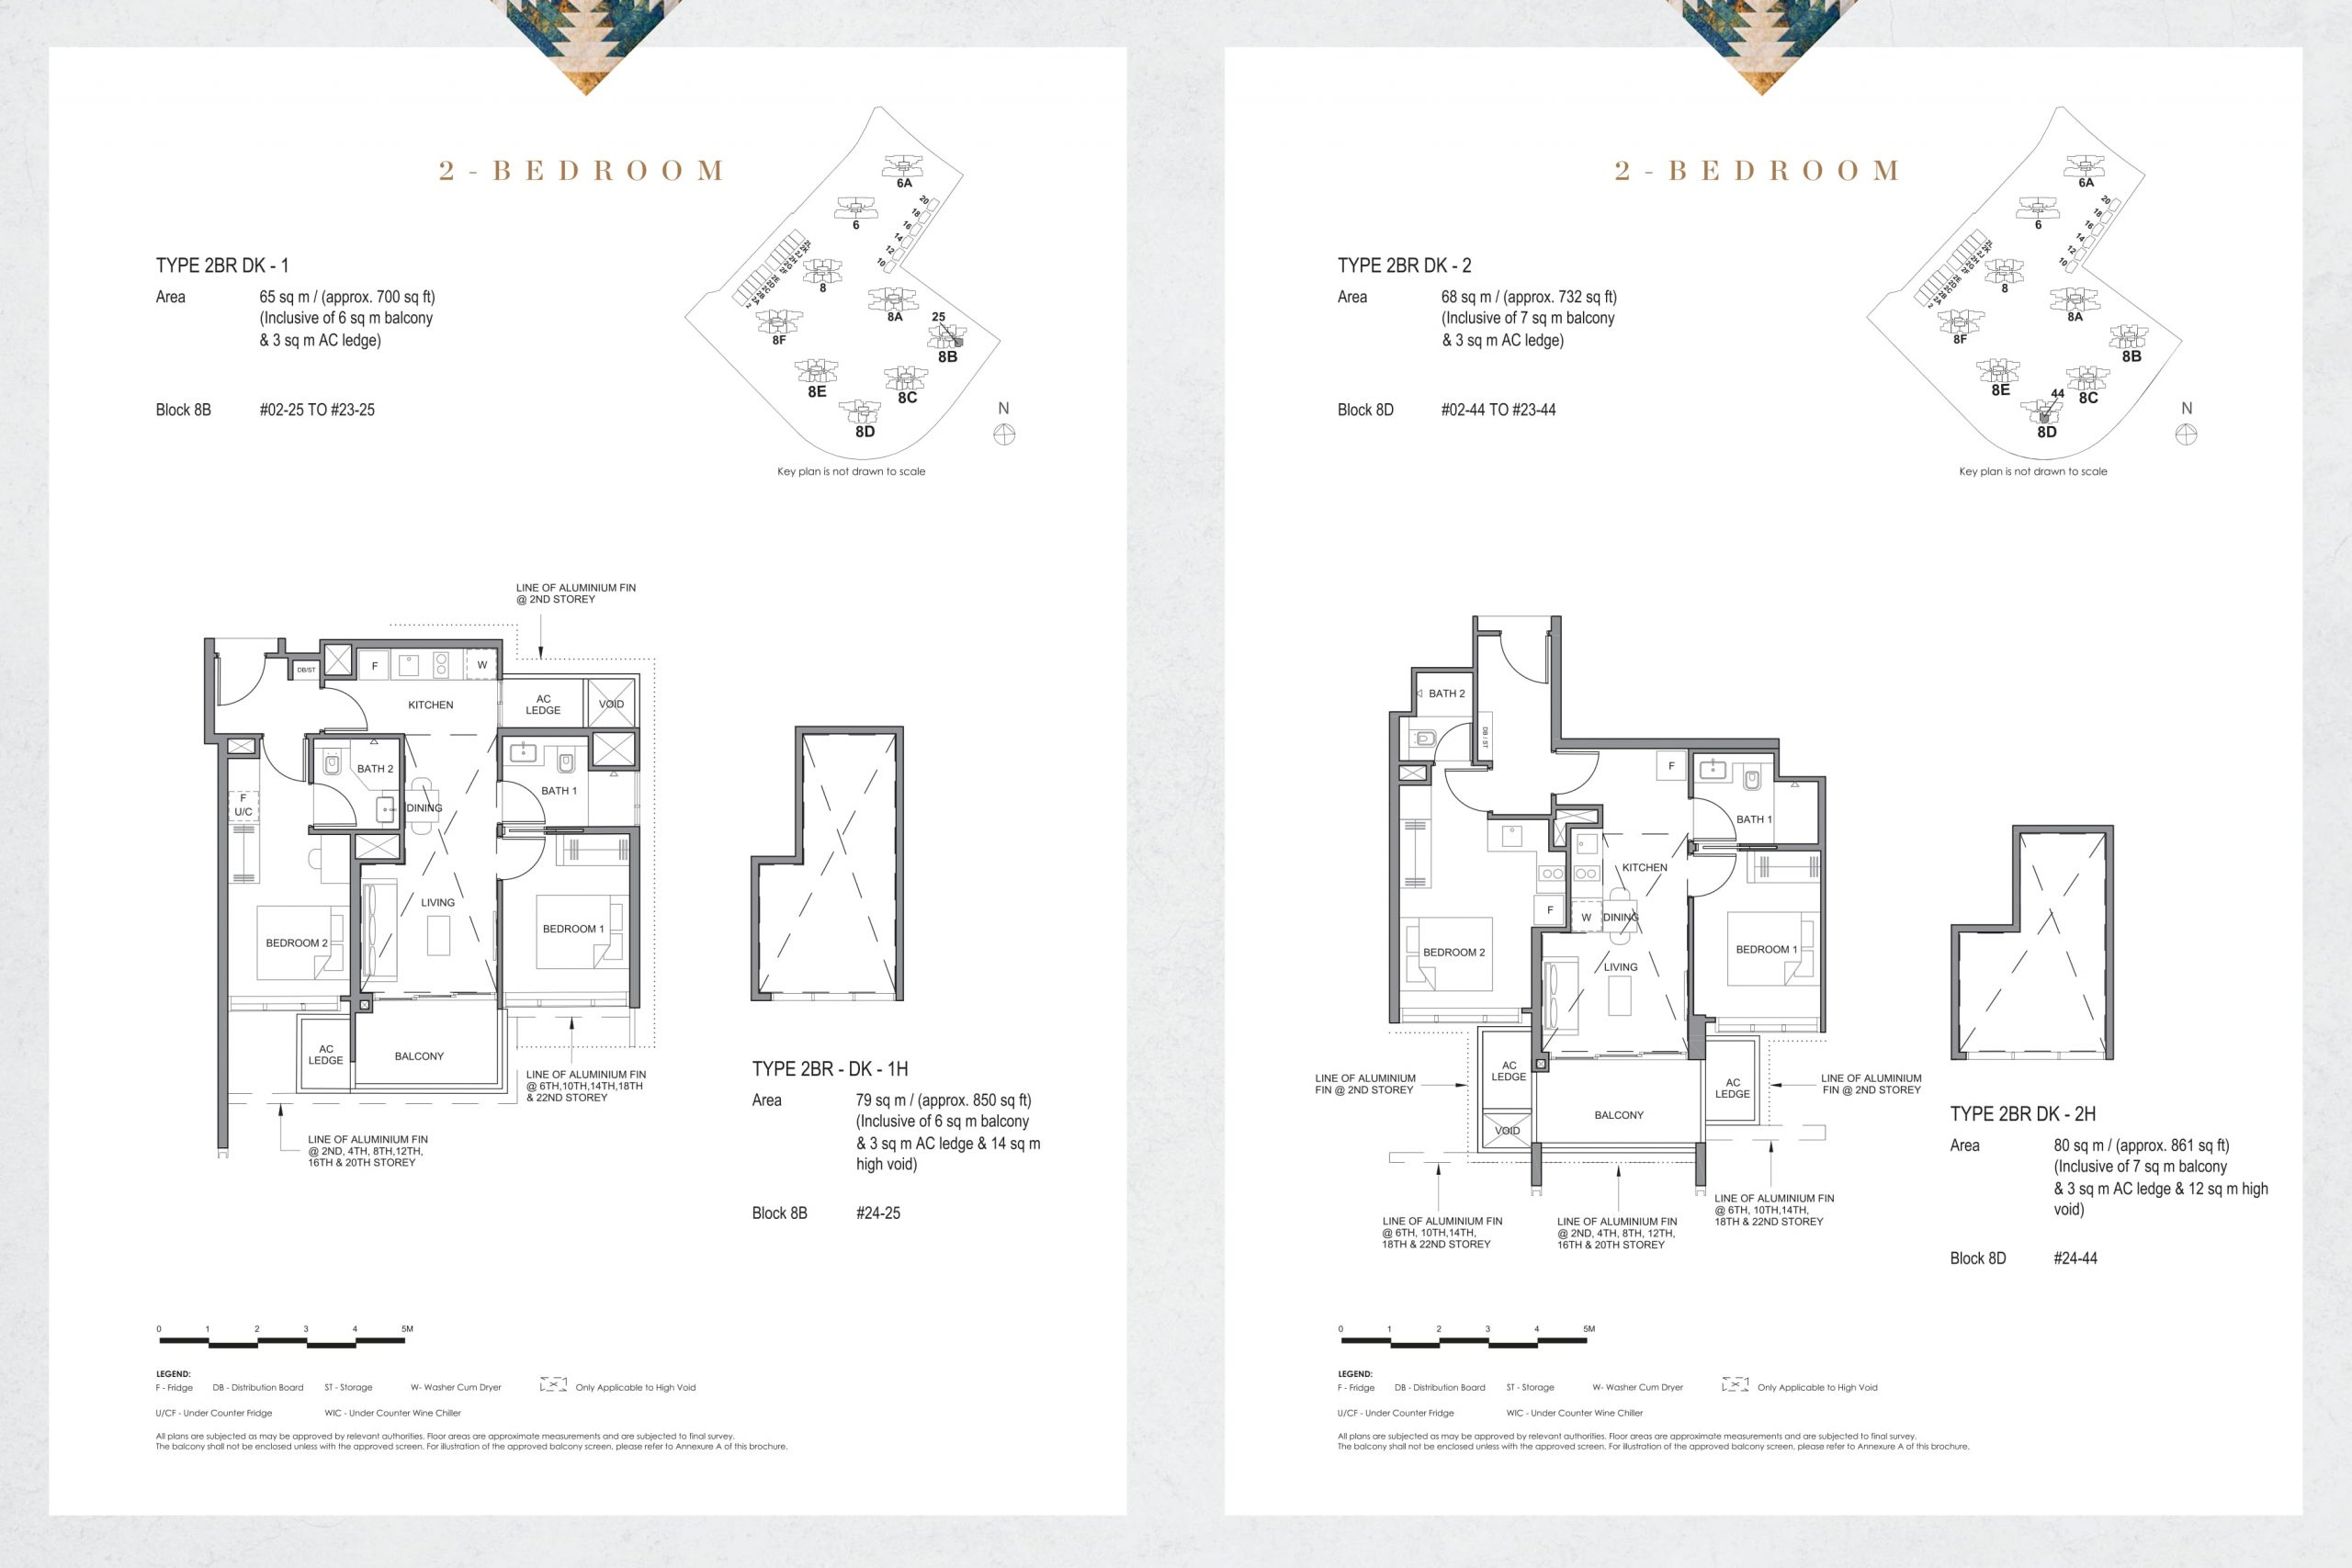 Parc Clematis' contemporary two-bedroom types